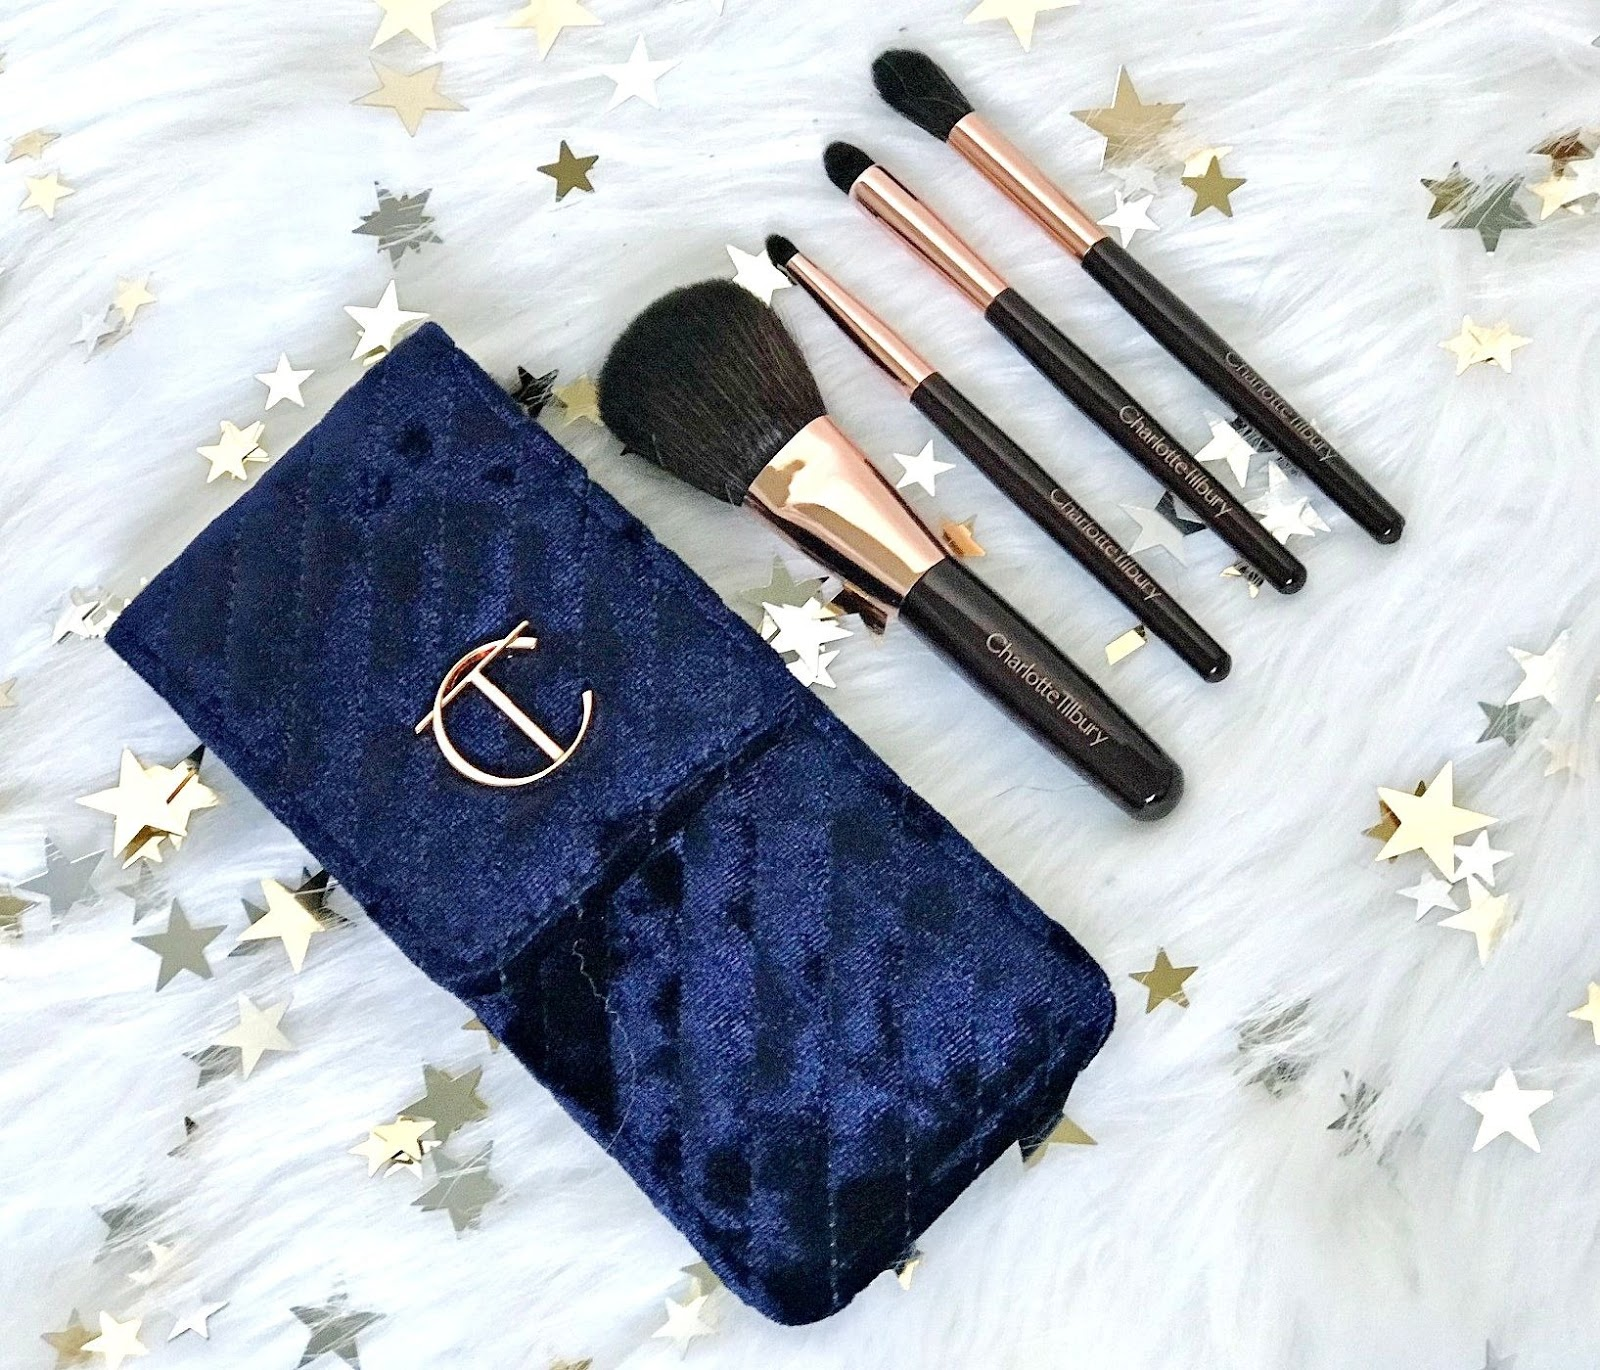 Charlotte Tilbury Magical Mini Brush Set review